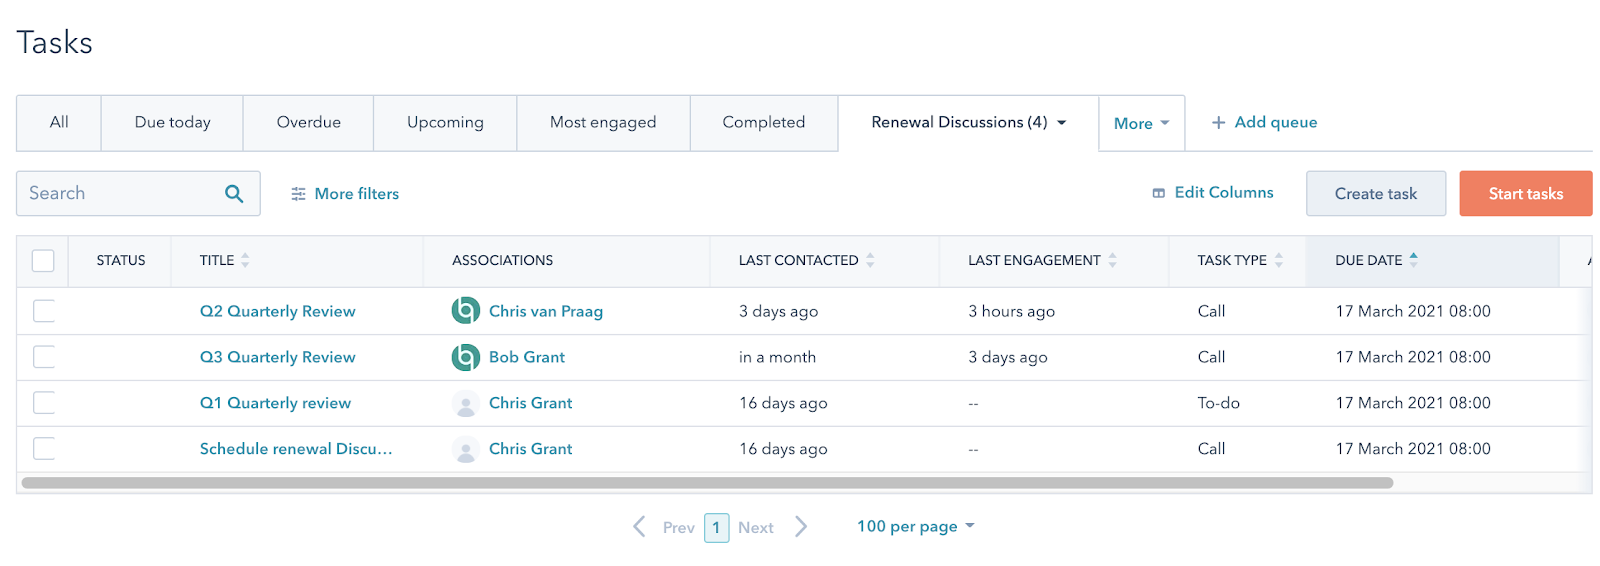 A view of tasks sorted by 'Today' in HubSpot